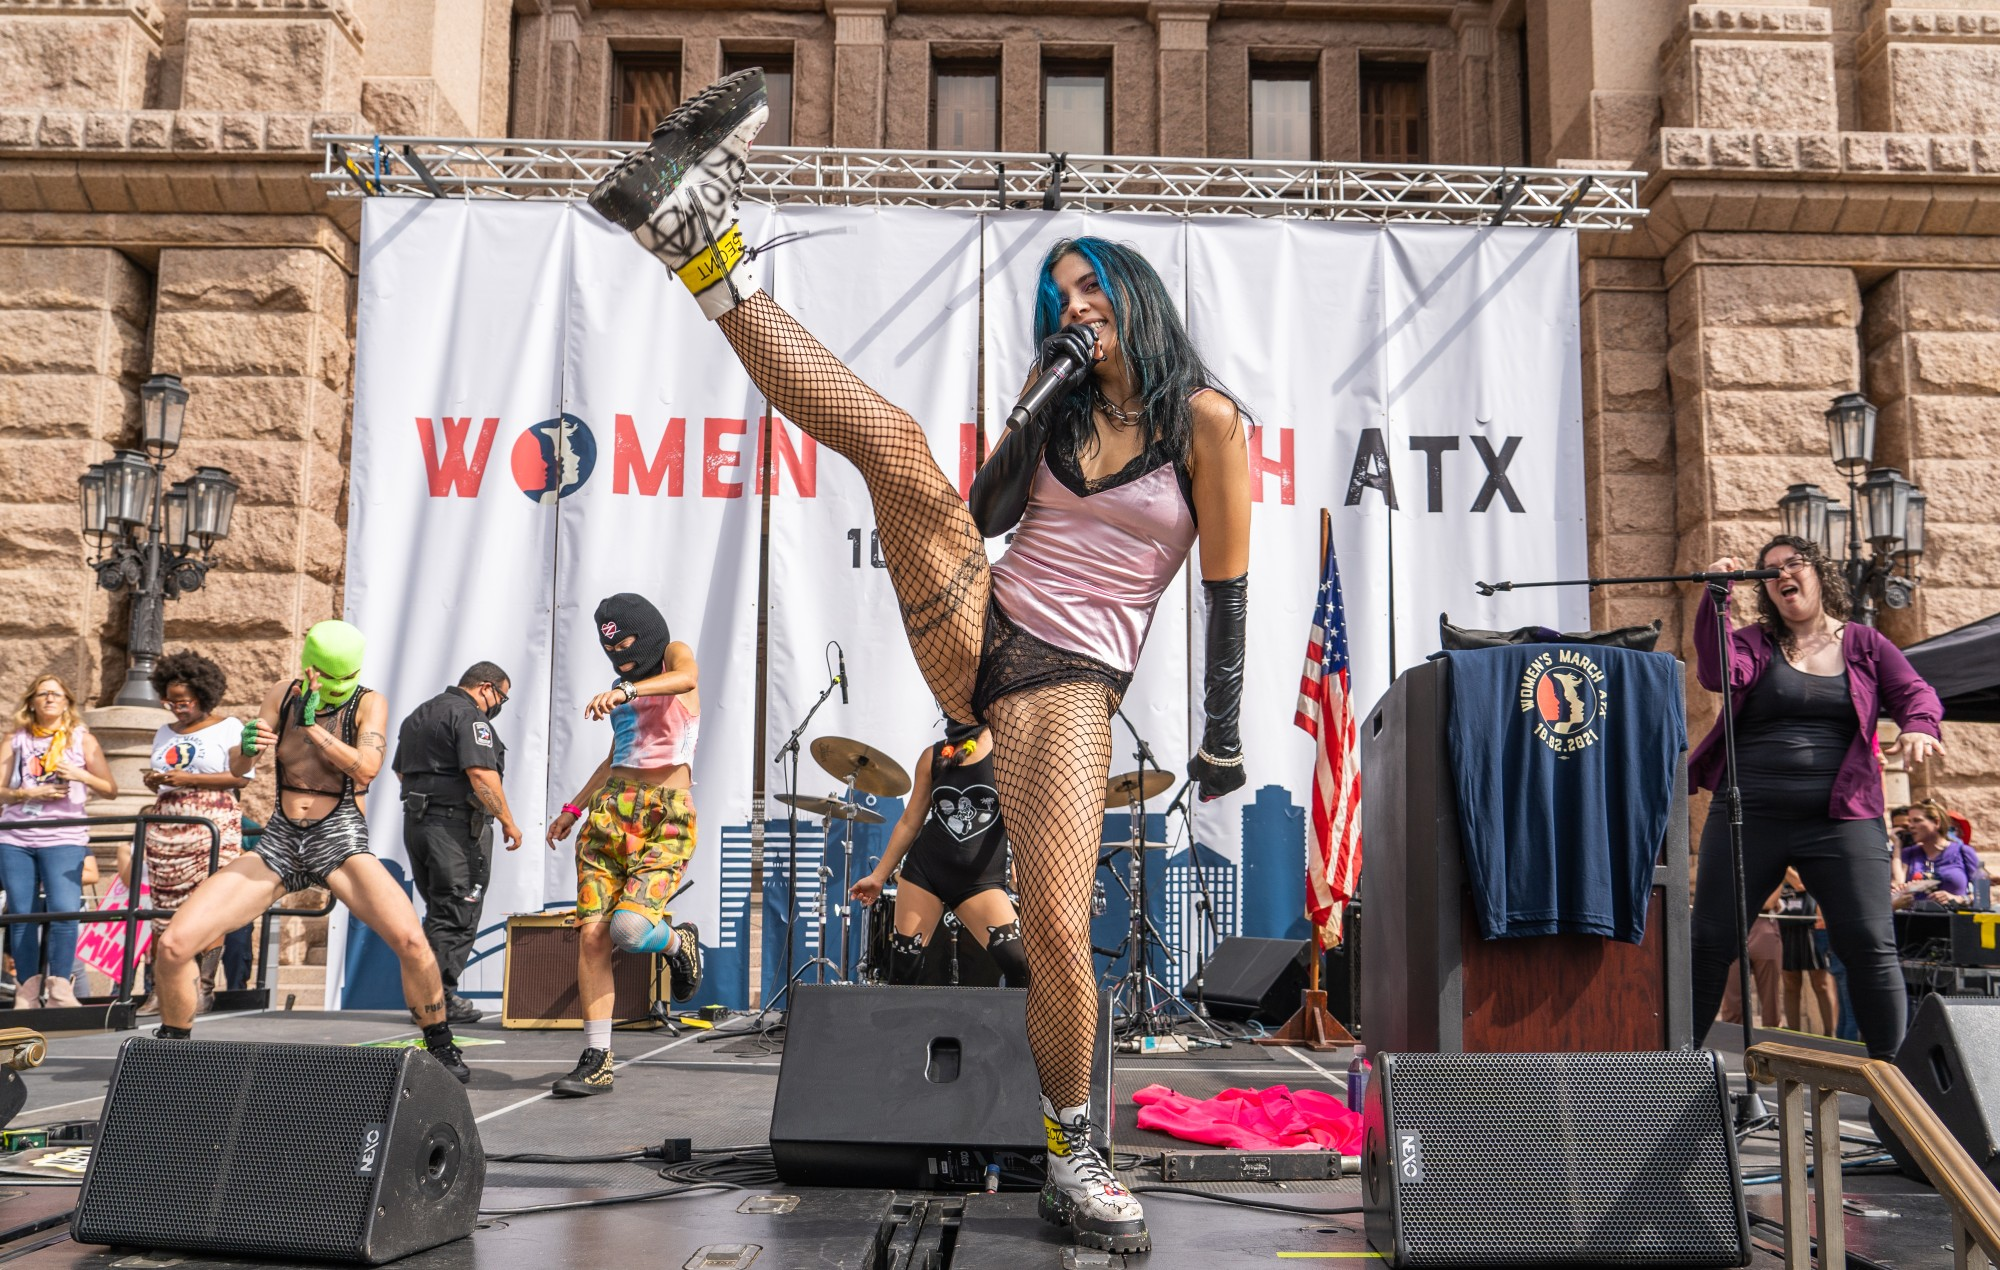 Pussy Riot perform at the nearby Women's March (Credit: Joshua Mellin)